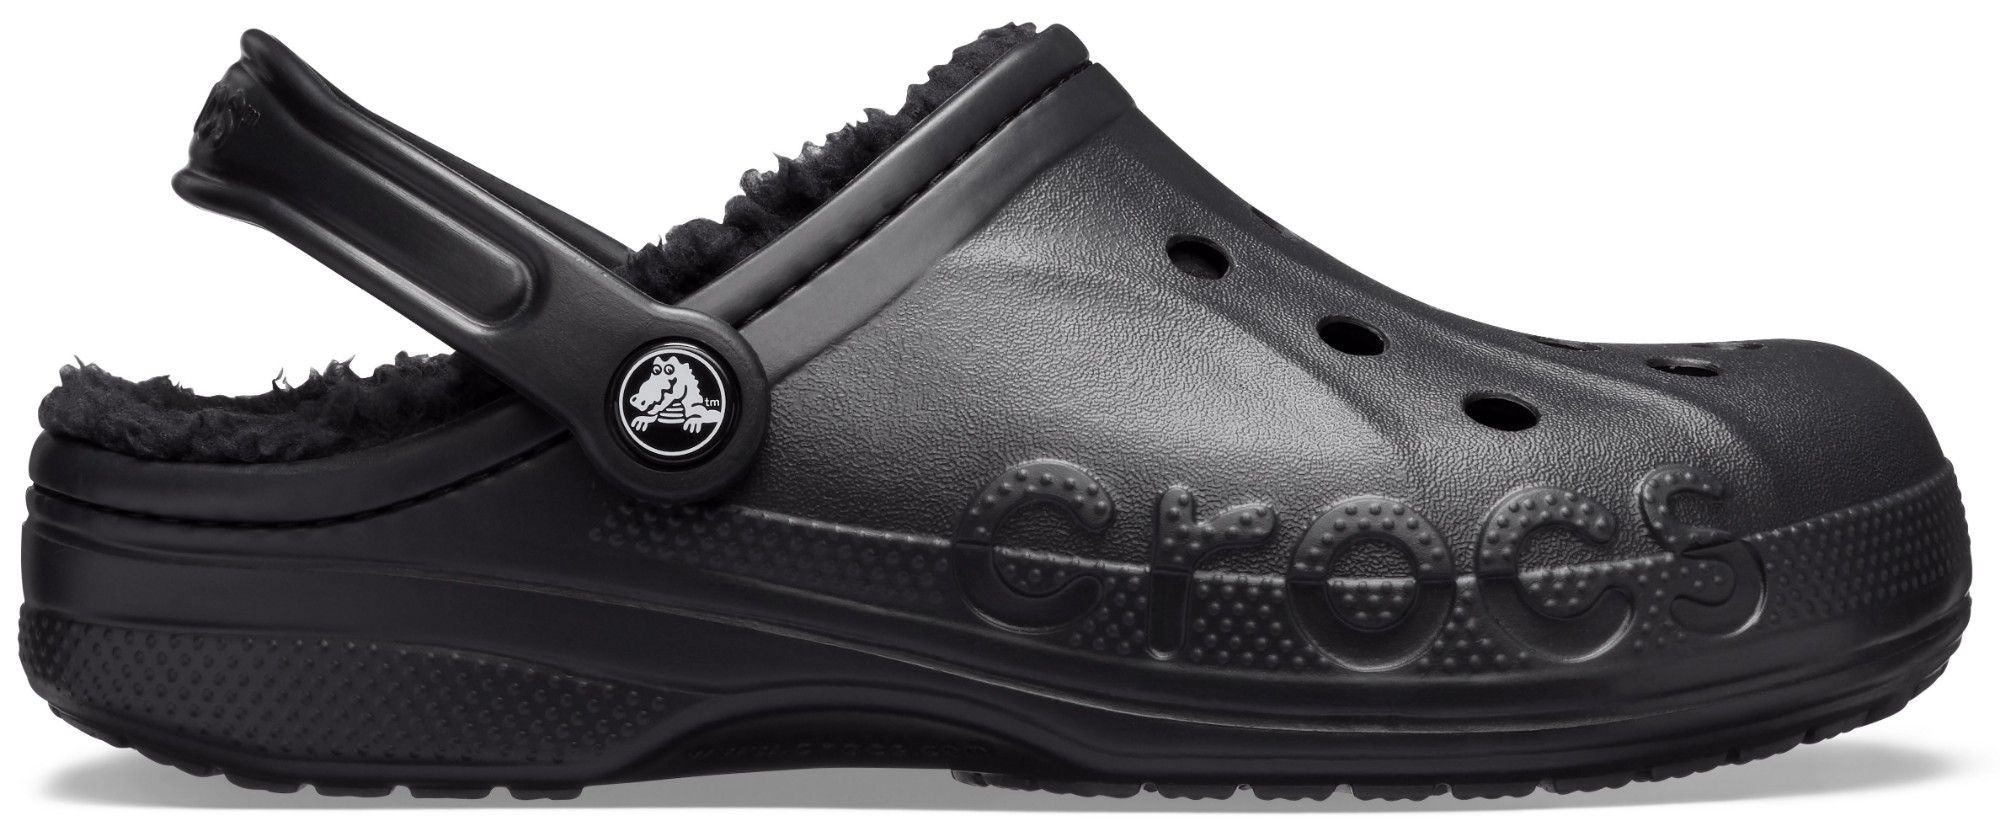 Crocs™ Baya Lined Clog Black/Black 43,5